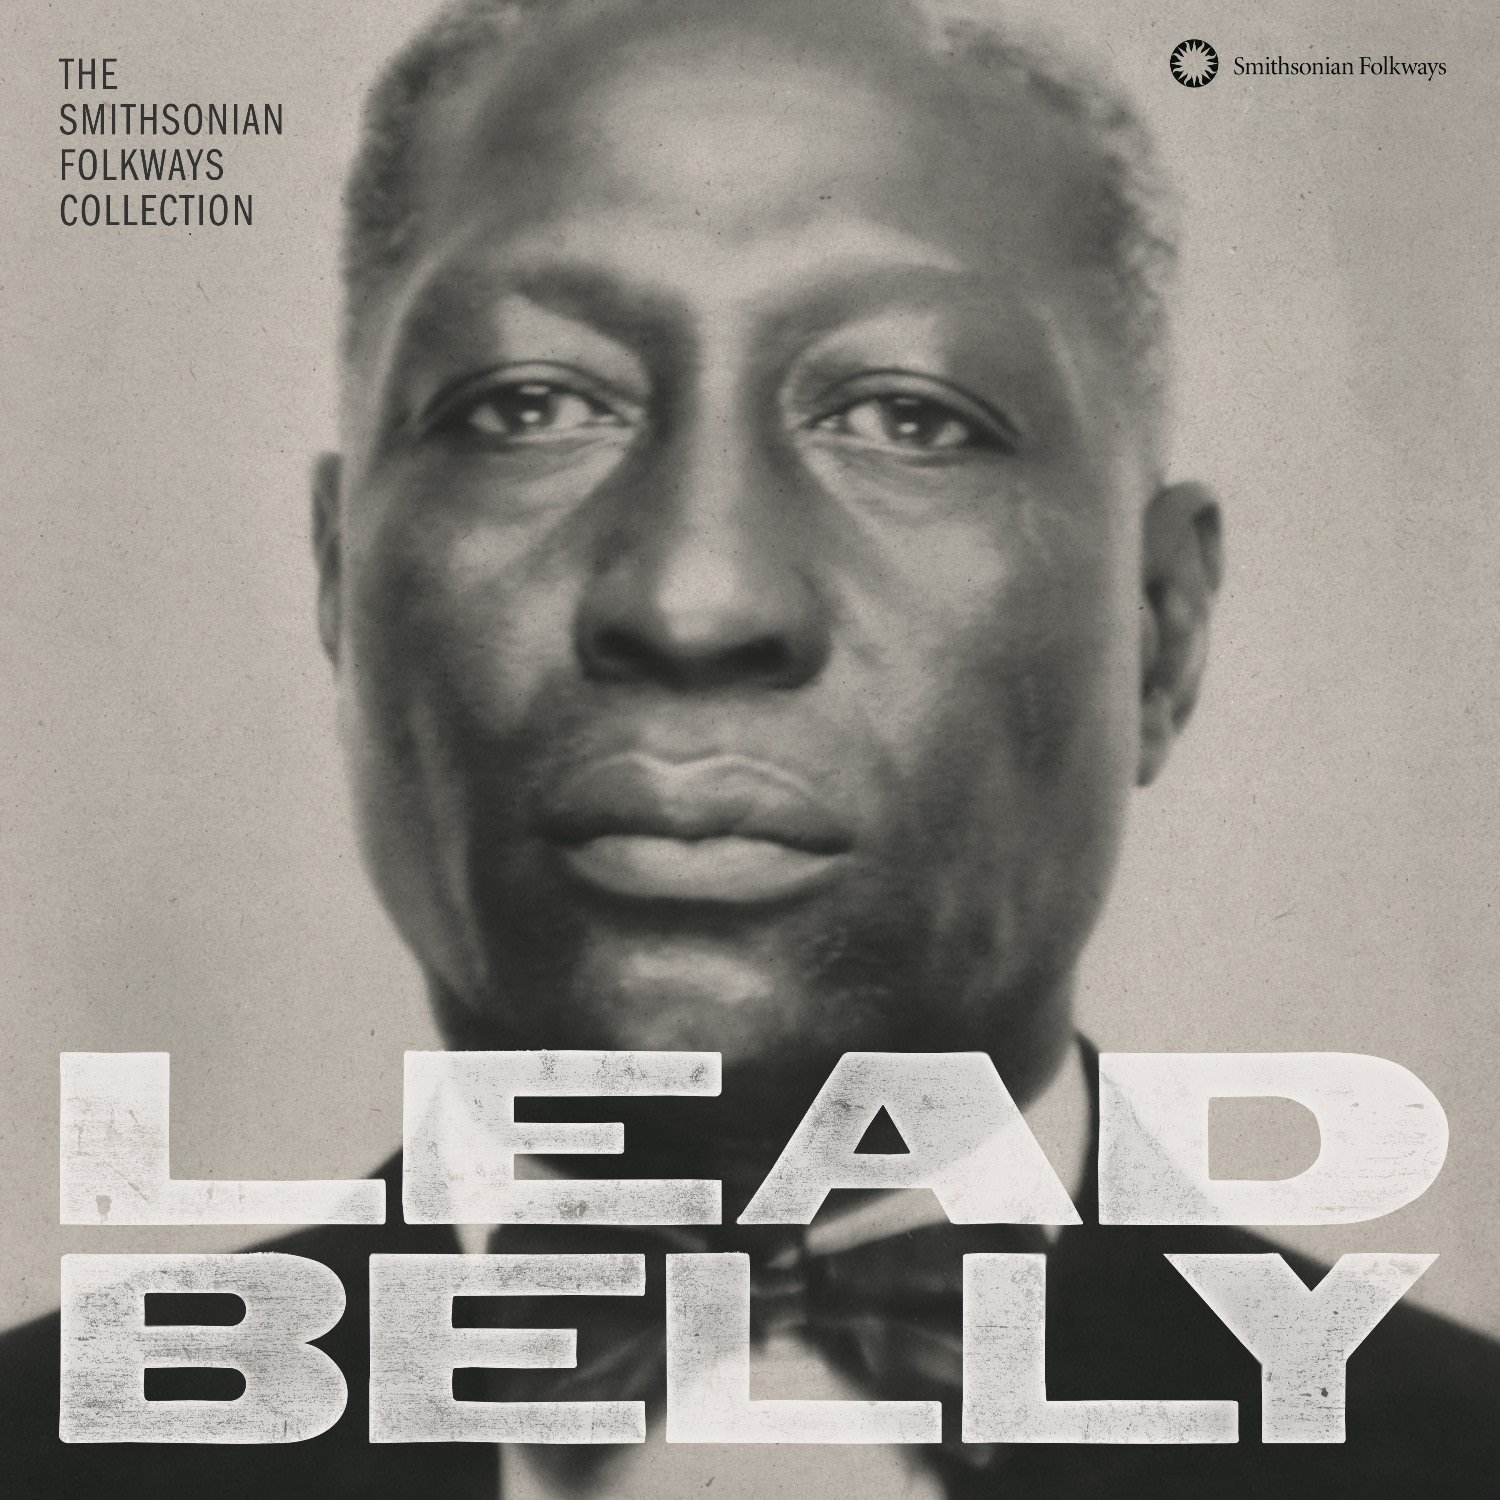 Lead Belly: The Smithsonian Folkways Collection by Smithsonian Folkways